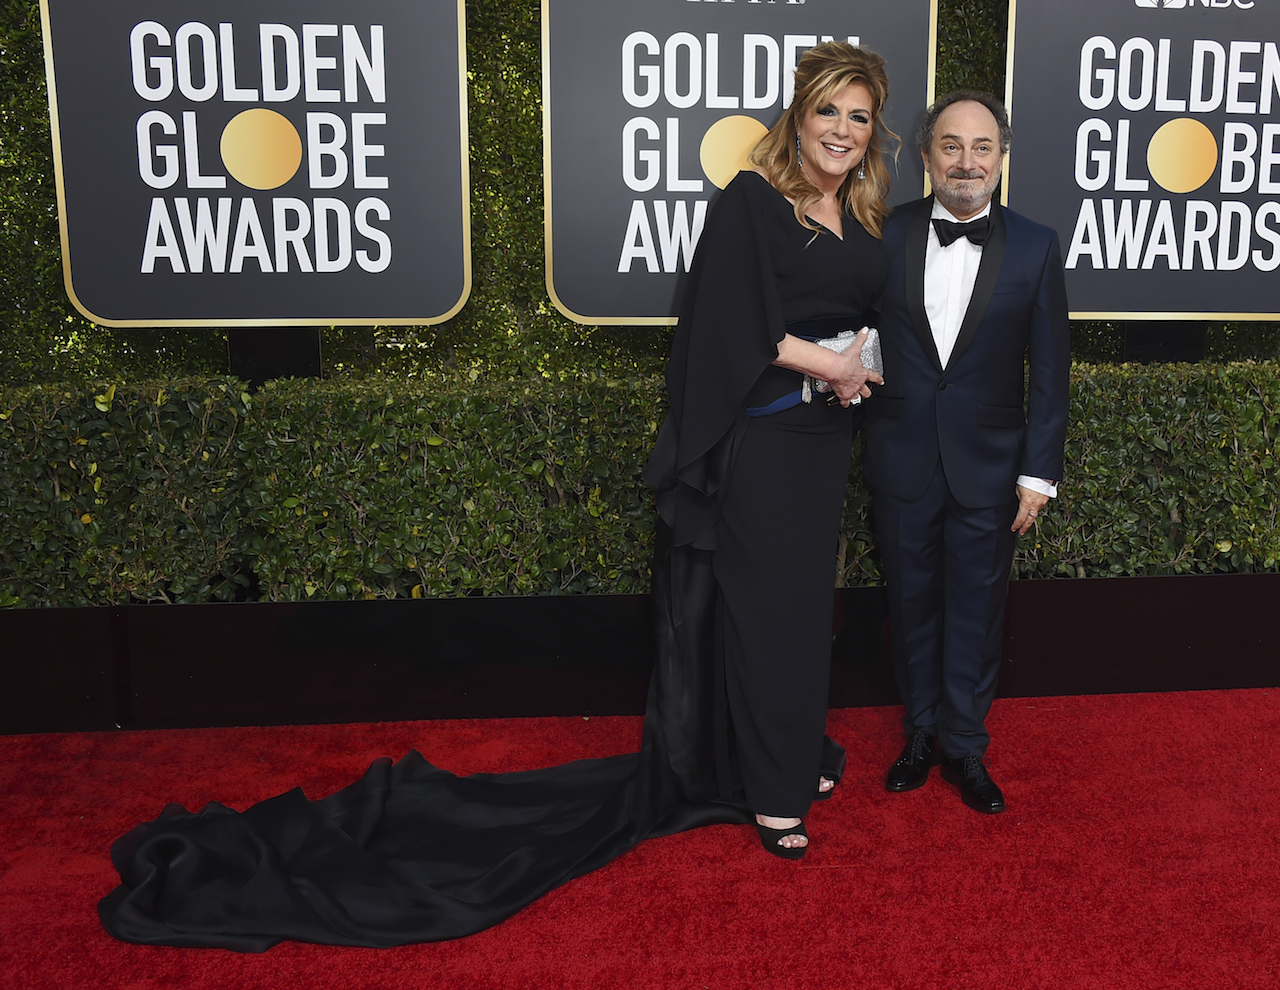 "<div class=""meta image-caption""><div class=""origin-logo origin-image ap""><span>AP</span></div><span class=""caption-text"">Caroline Aaron, left, and Kevin Pollak arrive at the 76th annual Golden Globe Awards at the Beverly Hilton Hotel on Sunday, Jan. 6, 2019, in Beverly Hills, Calif. (Jordan Strauss/Invision/AP)</span></div>"